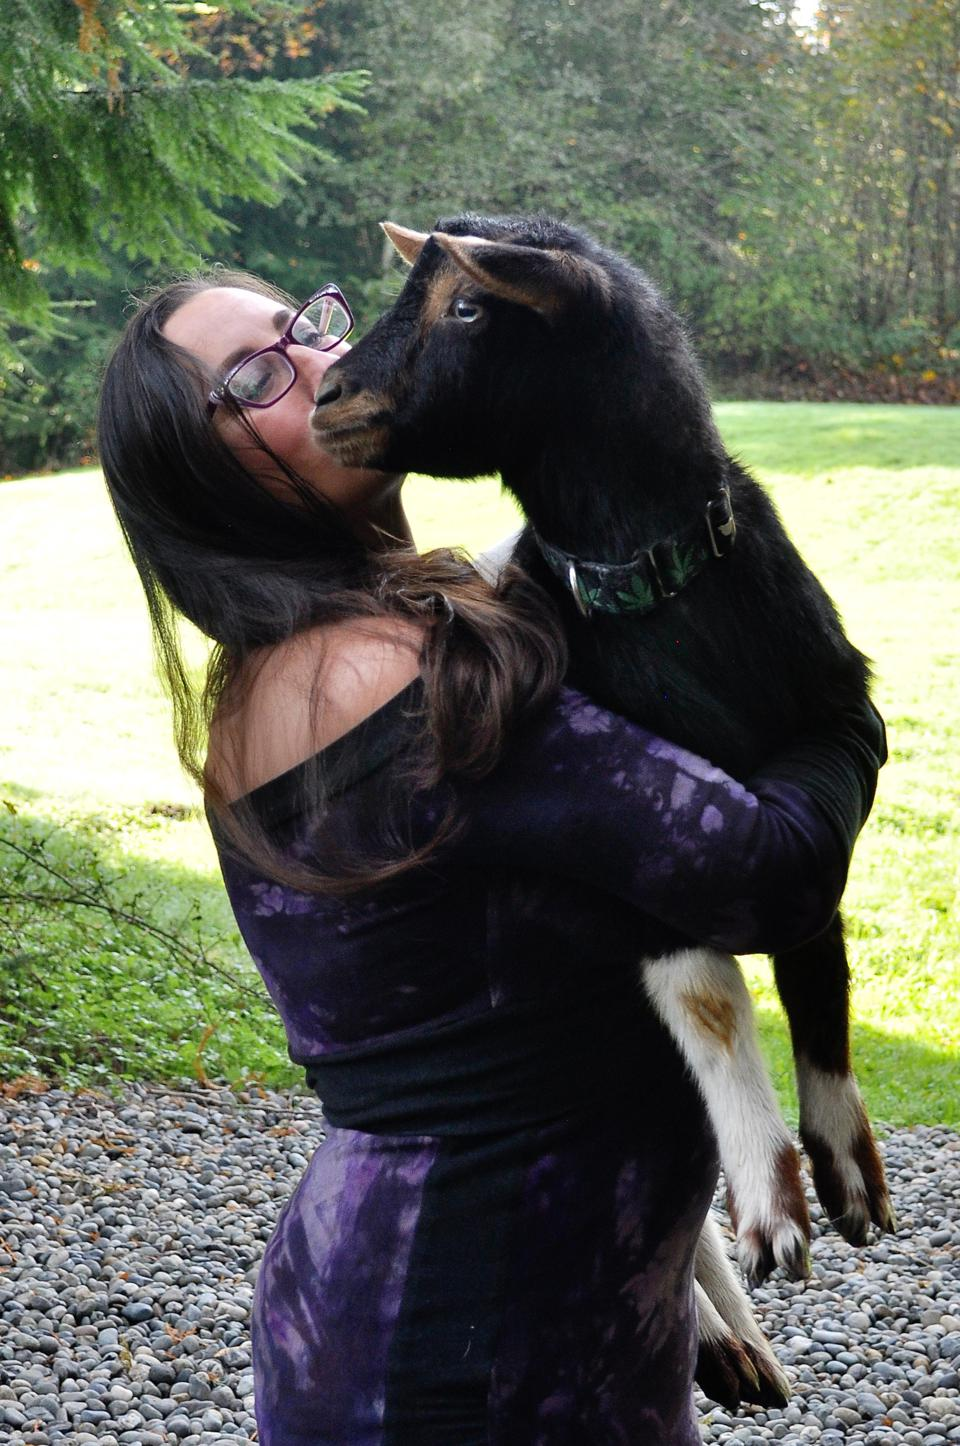 Tracy Rice, owner of Treehouse Joint, with one of her goats that free roams the property.